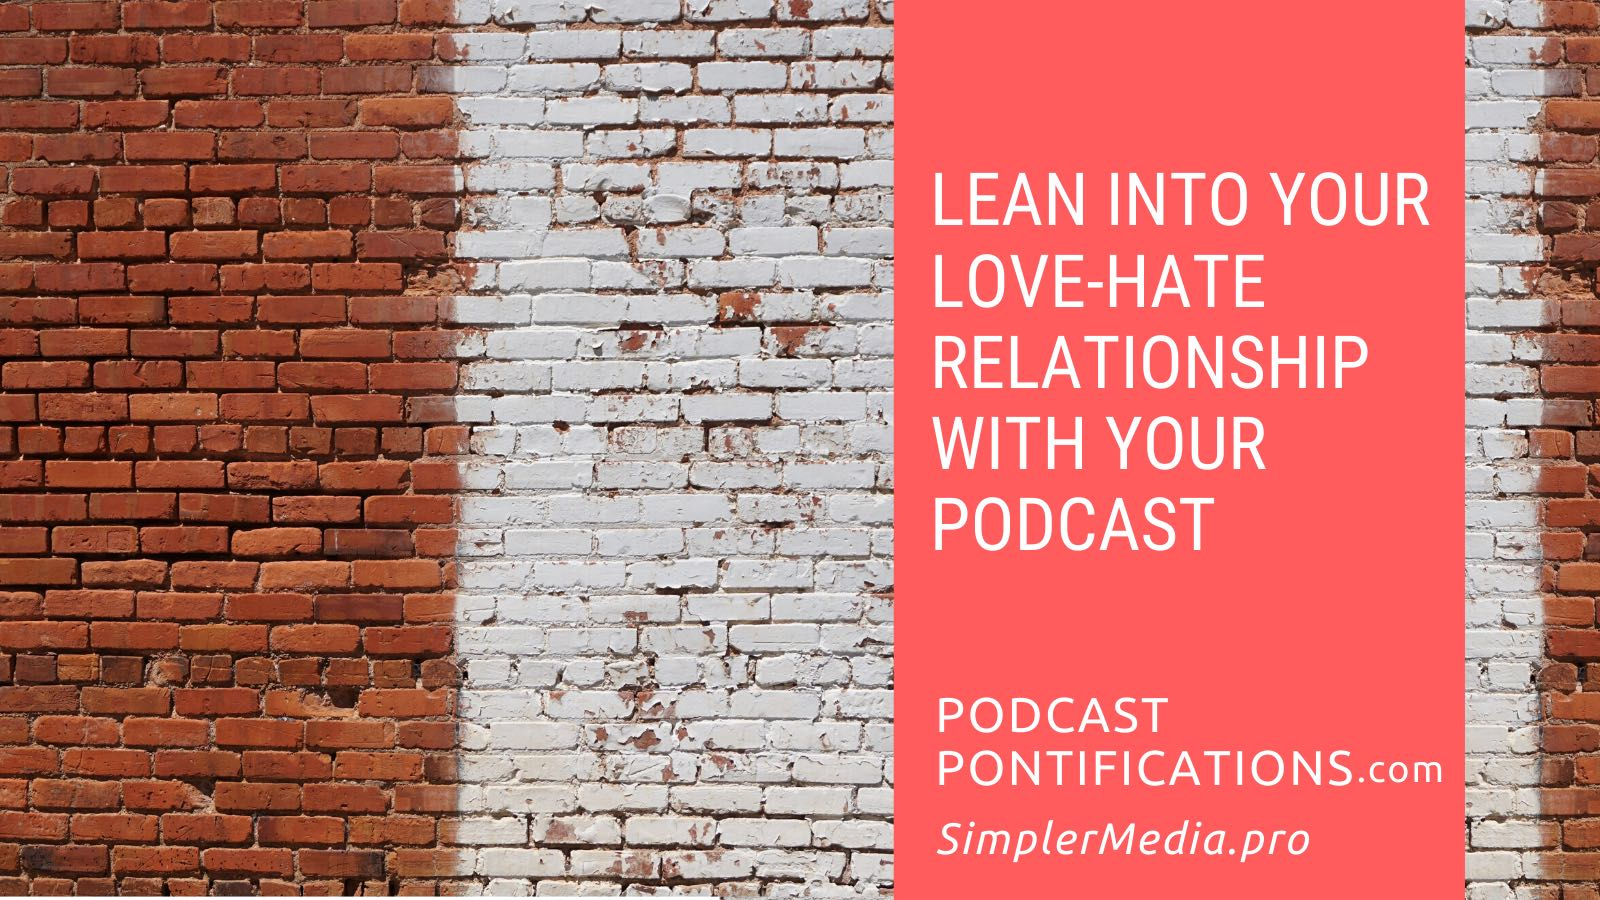 Lean Into Your Love-Hate Relationship With Your Podcast